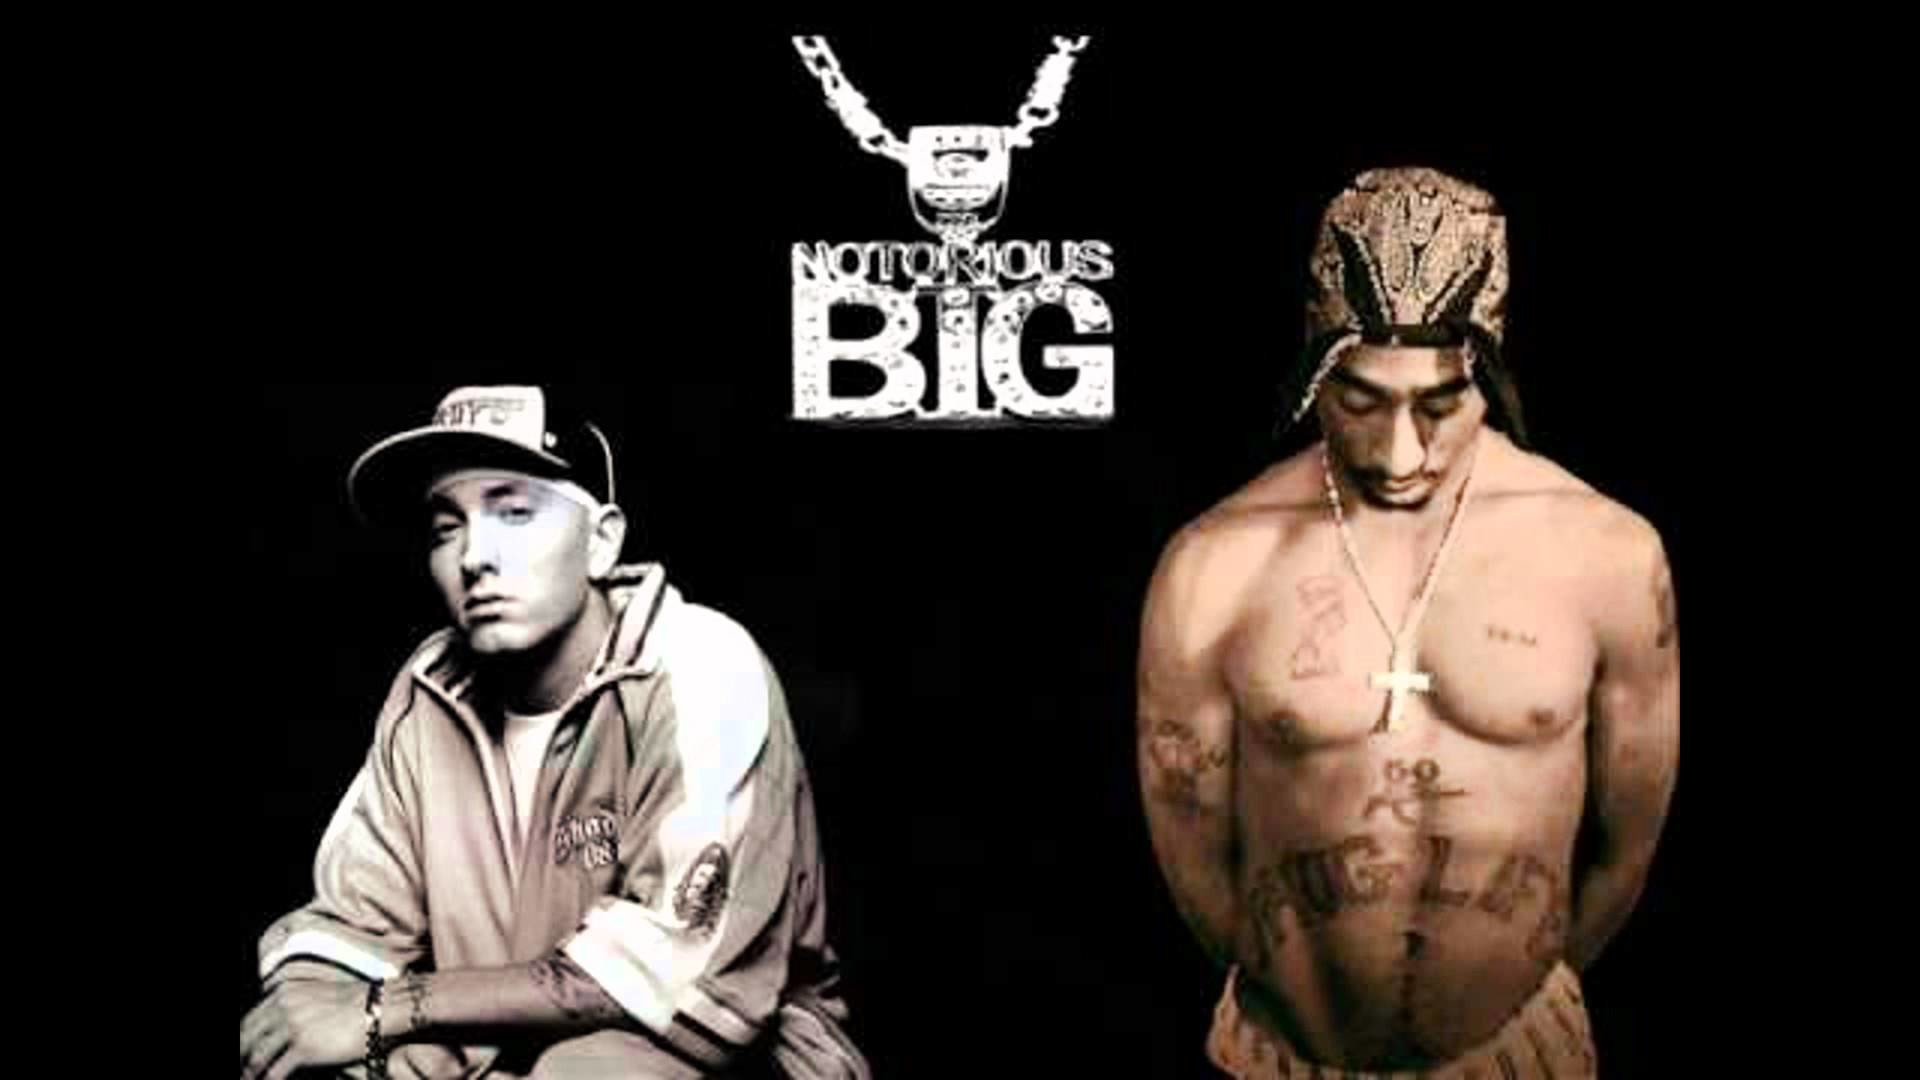 2Pac-Listen To Your Heart (ft. Notorious B.I.G., Roxette & Eminem) – YouTube